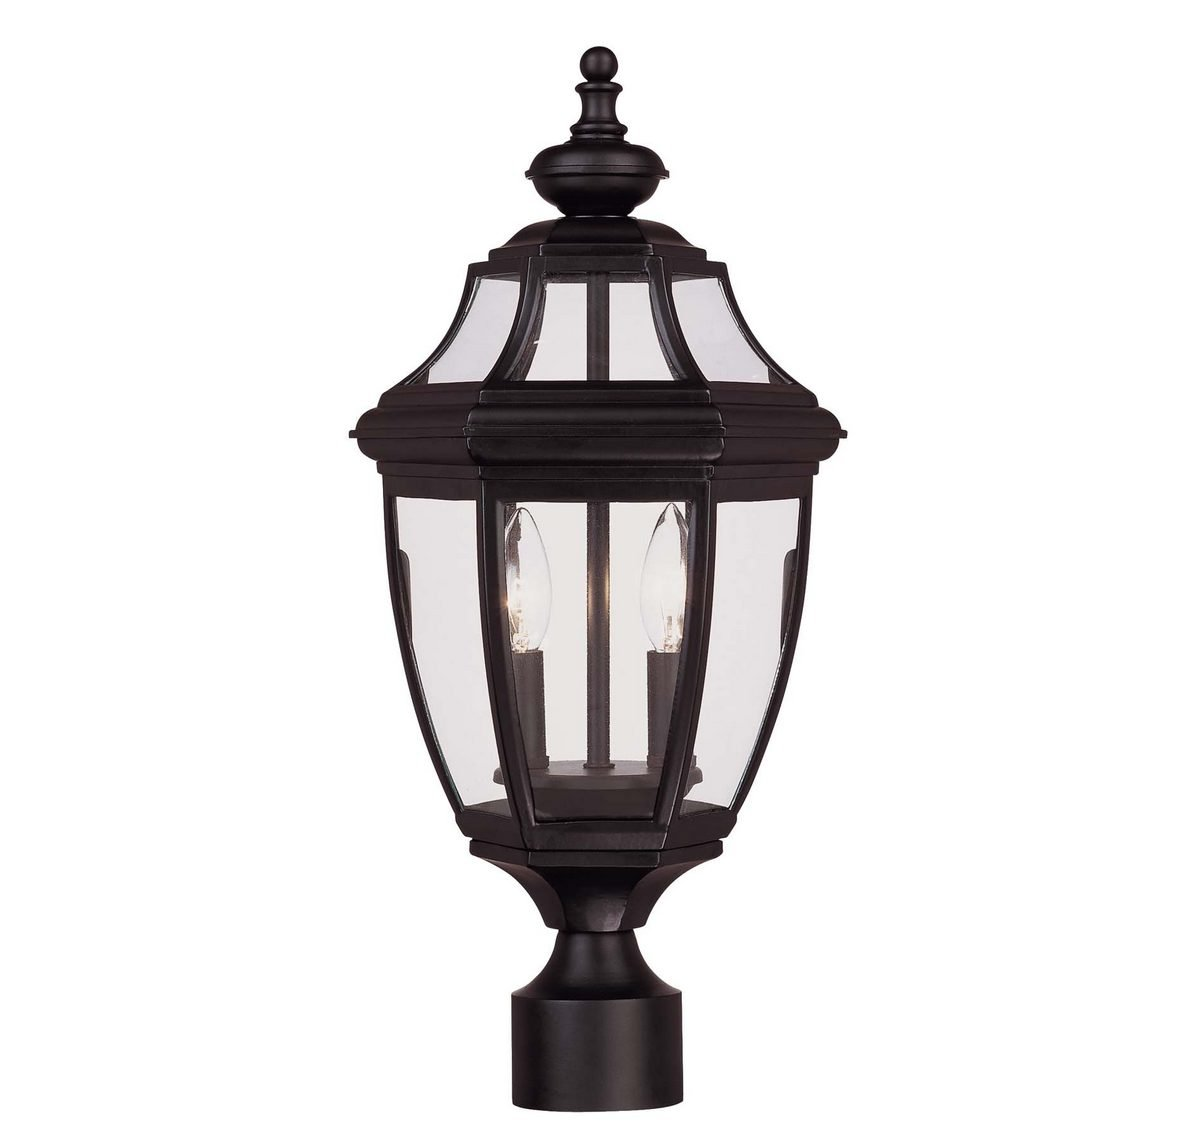 Savoy House Lighting 5-497-BK Endorado Collection 2-Light Outdoor Post Mount Lantern, Black Finish with Clear Glass by Savoy House